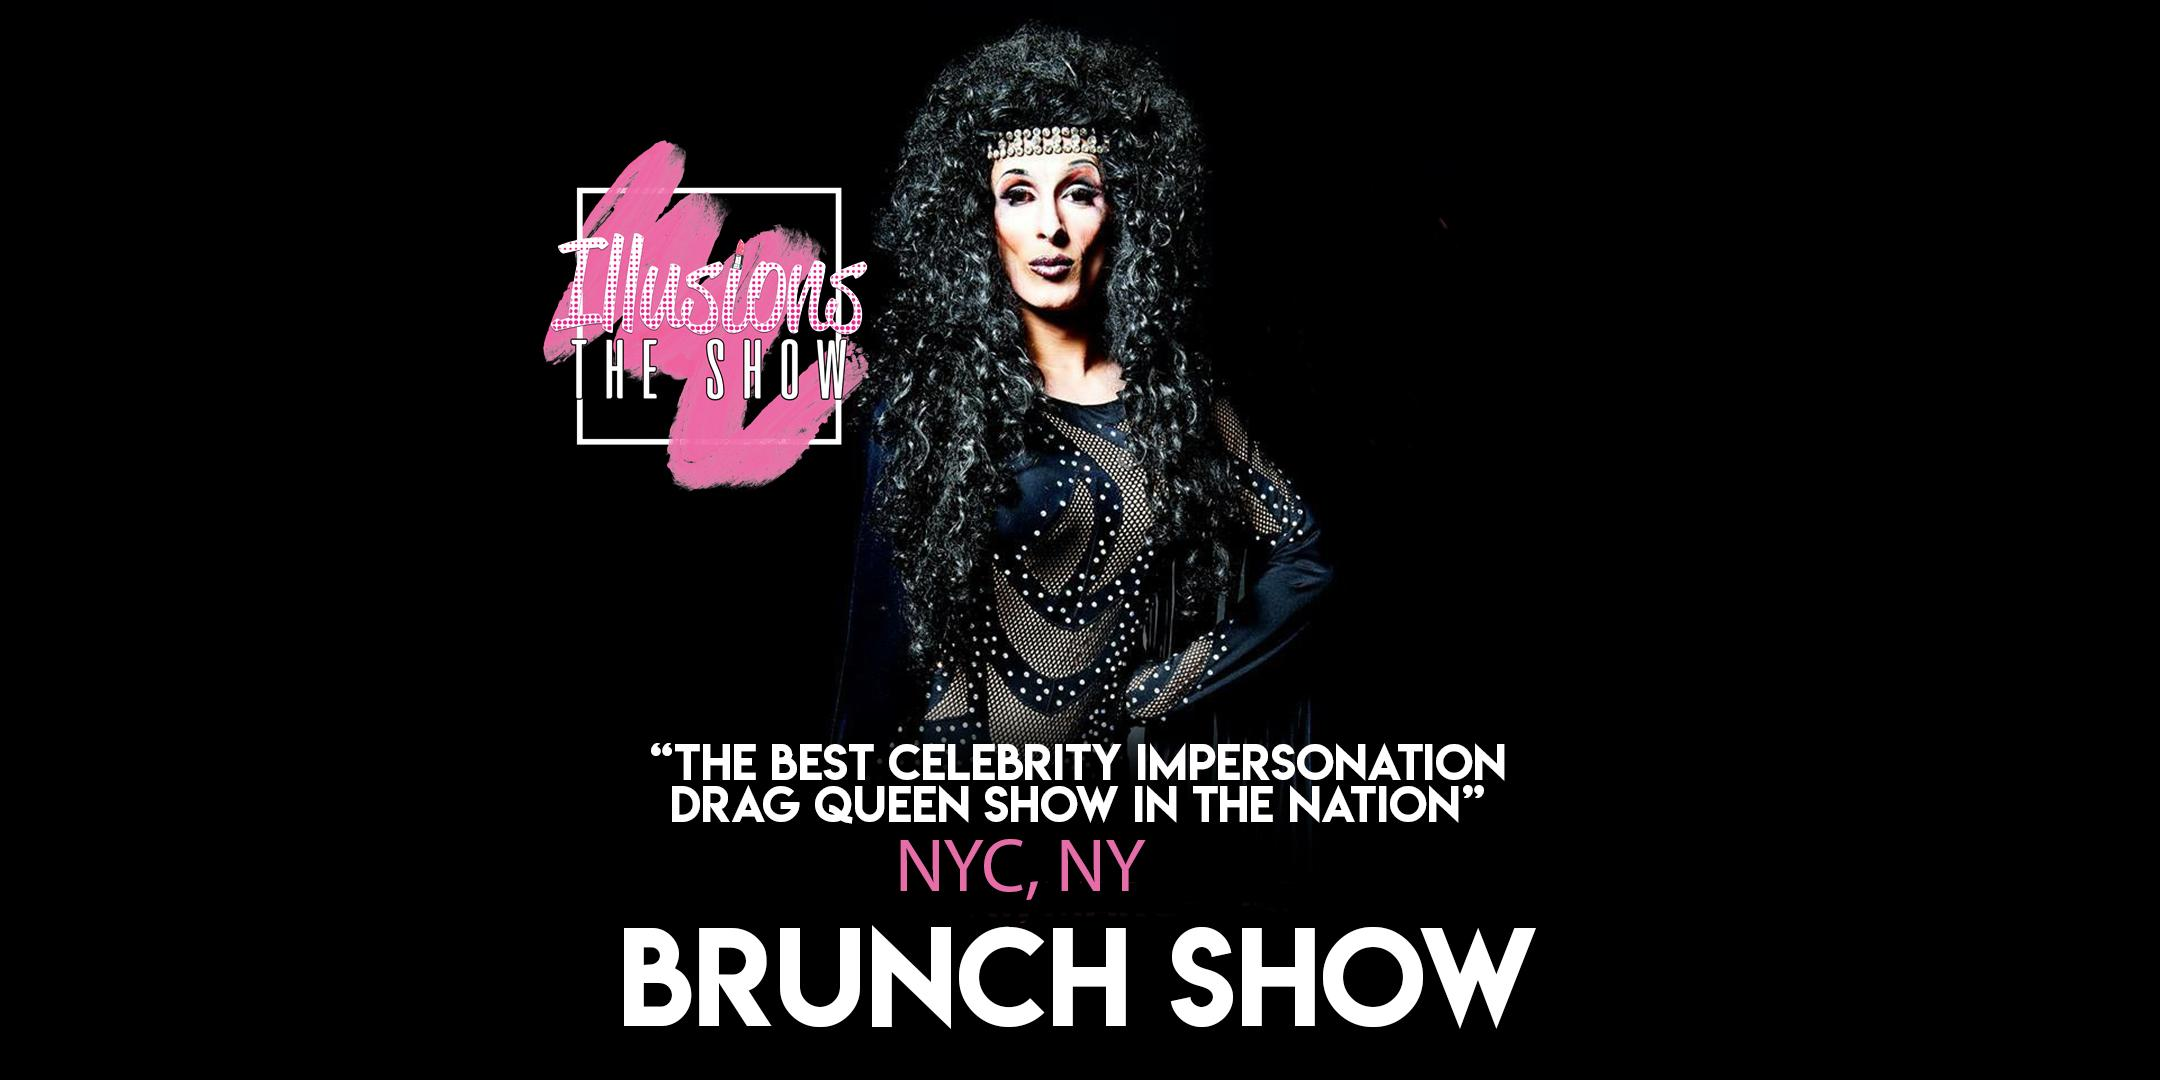 Illusions The Drag Brunch NYC - Drag Queen Brunch Show - NYC, NY